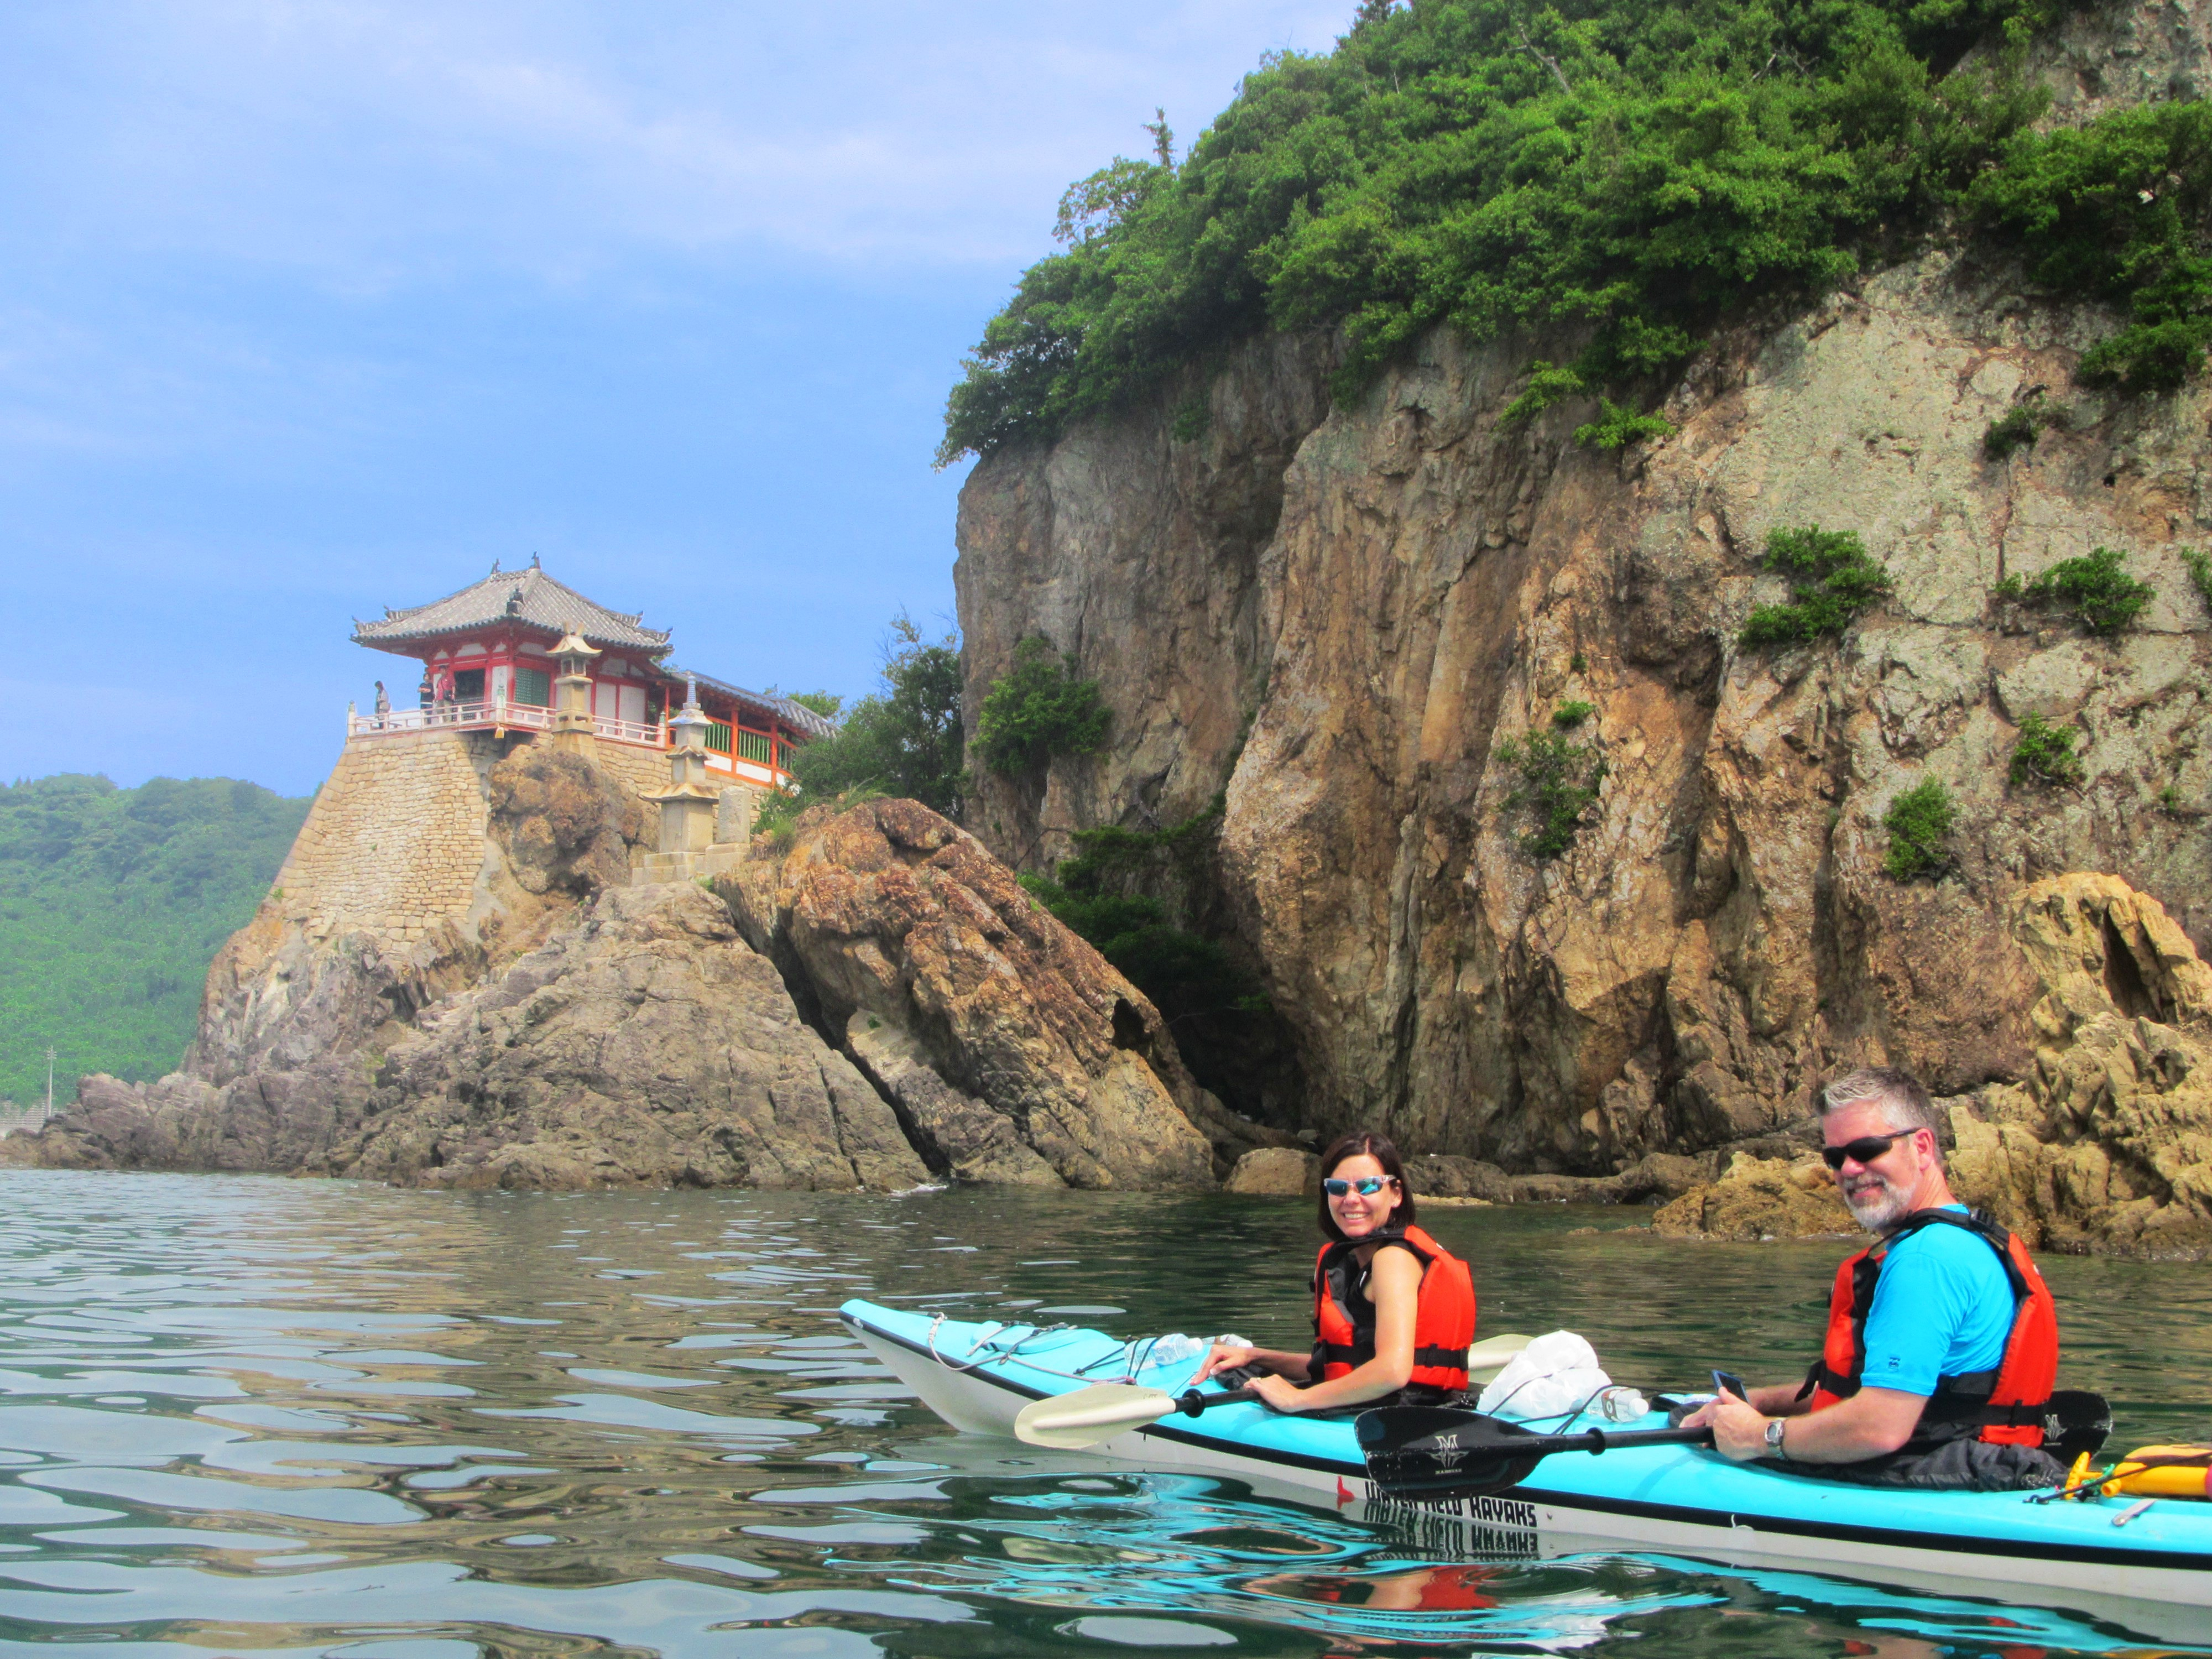 Explore the Nature that Inspired Ghibli Movies on an Exciting Kayak Tour (Half Day)